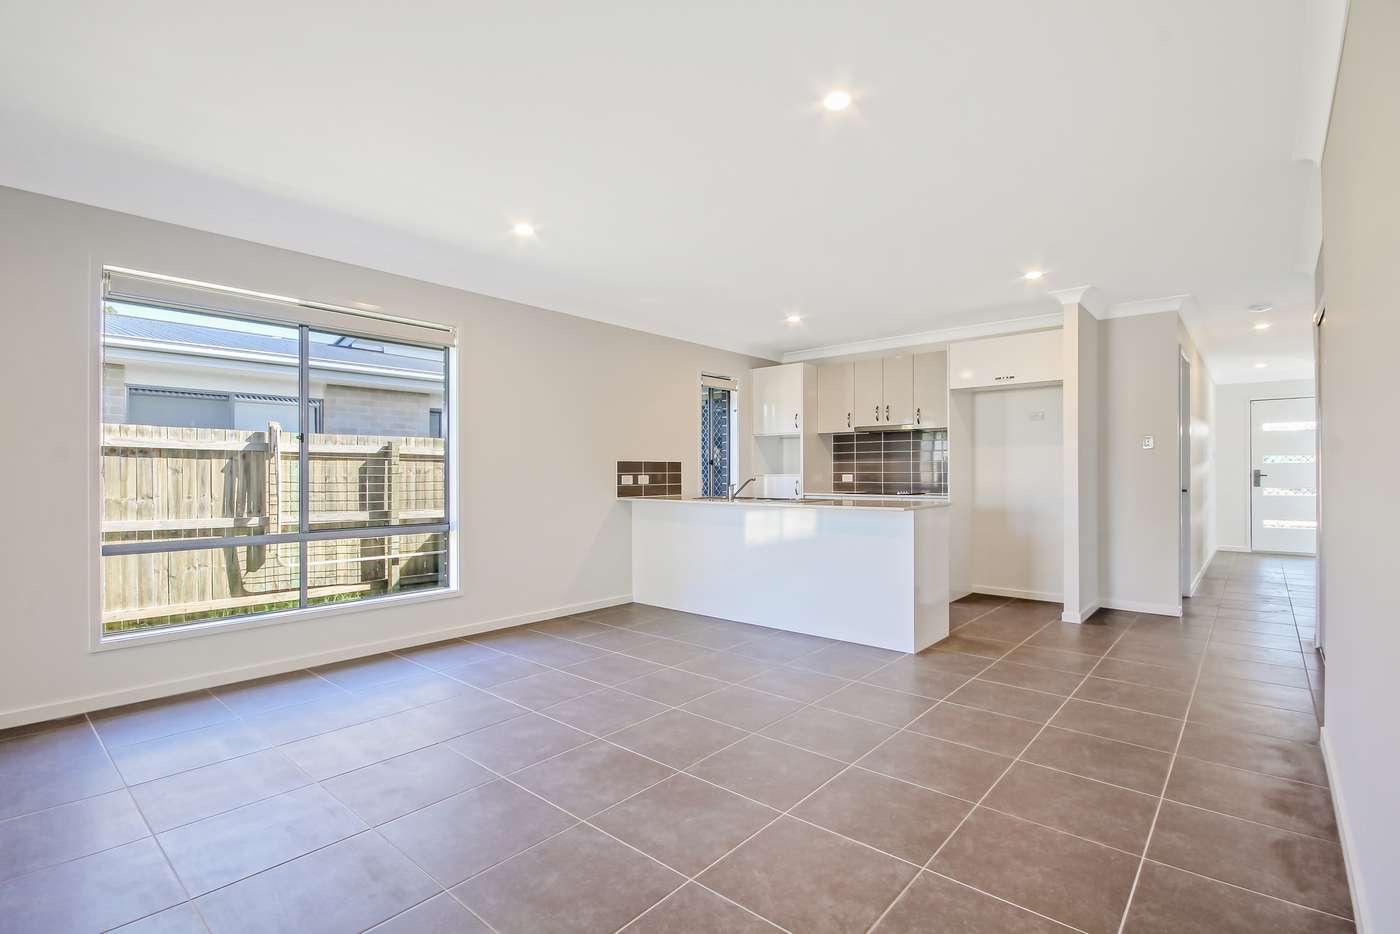 Seventh view of Homely house listing, 32 Sunseeker Street, Burpengary QLD 4505